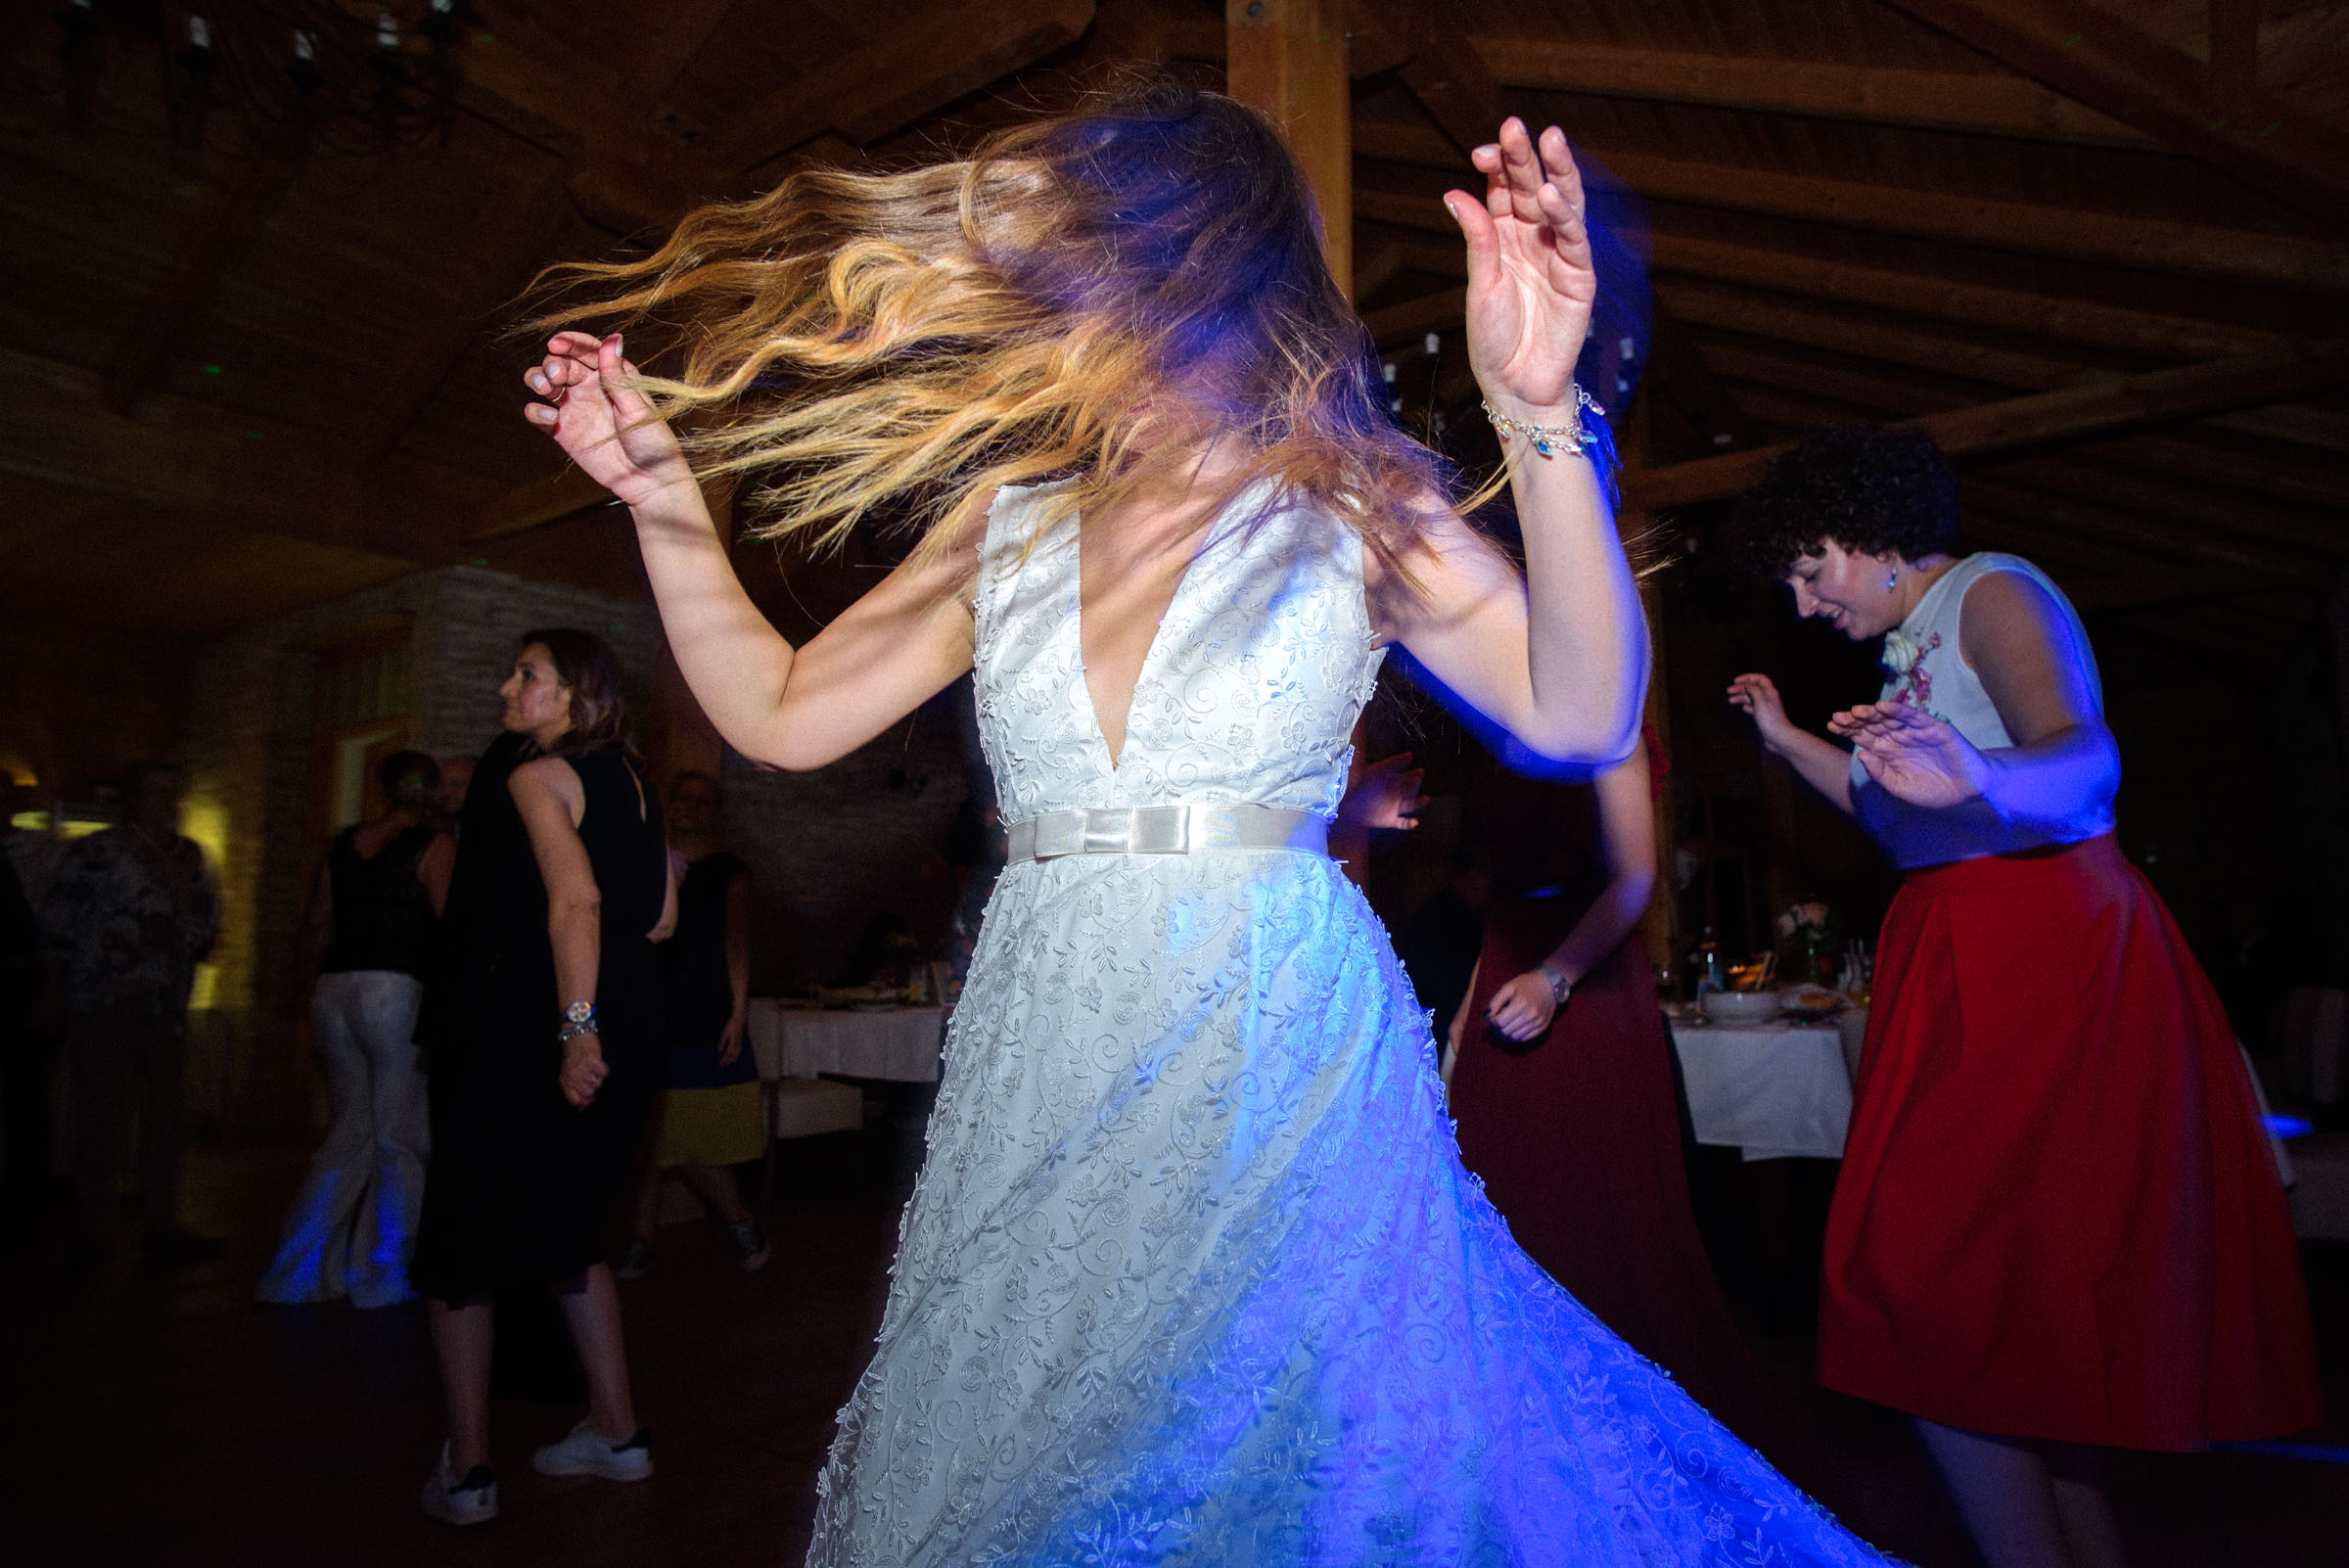 bride dancing wildly to the music and her hair is flying all around